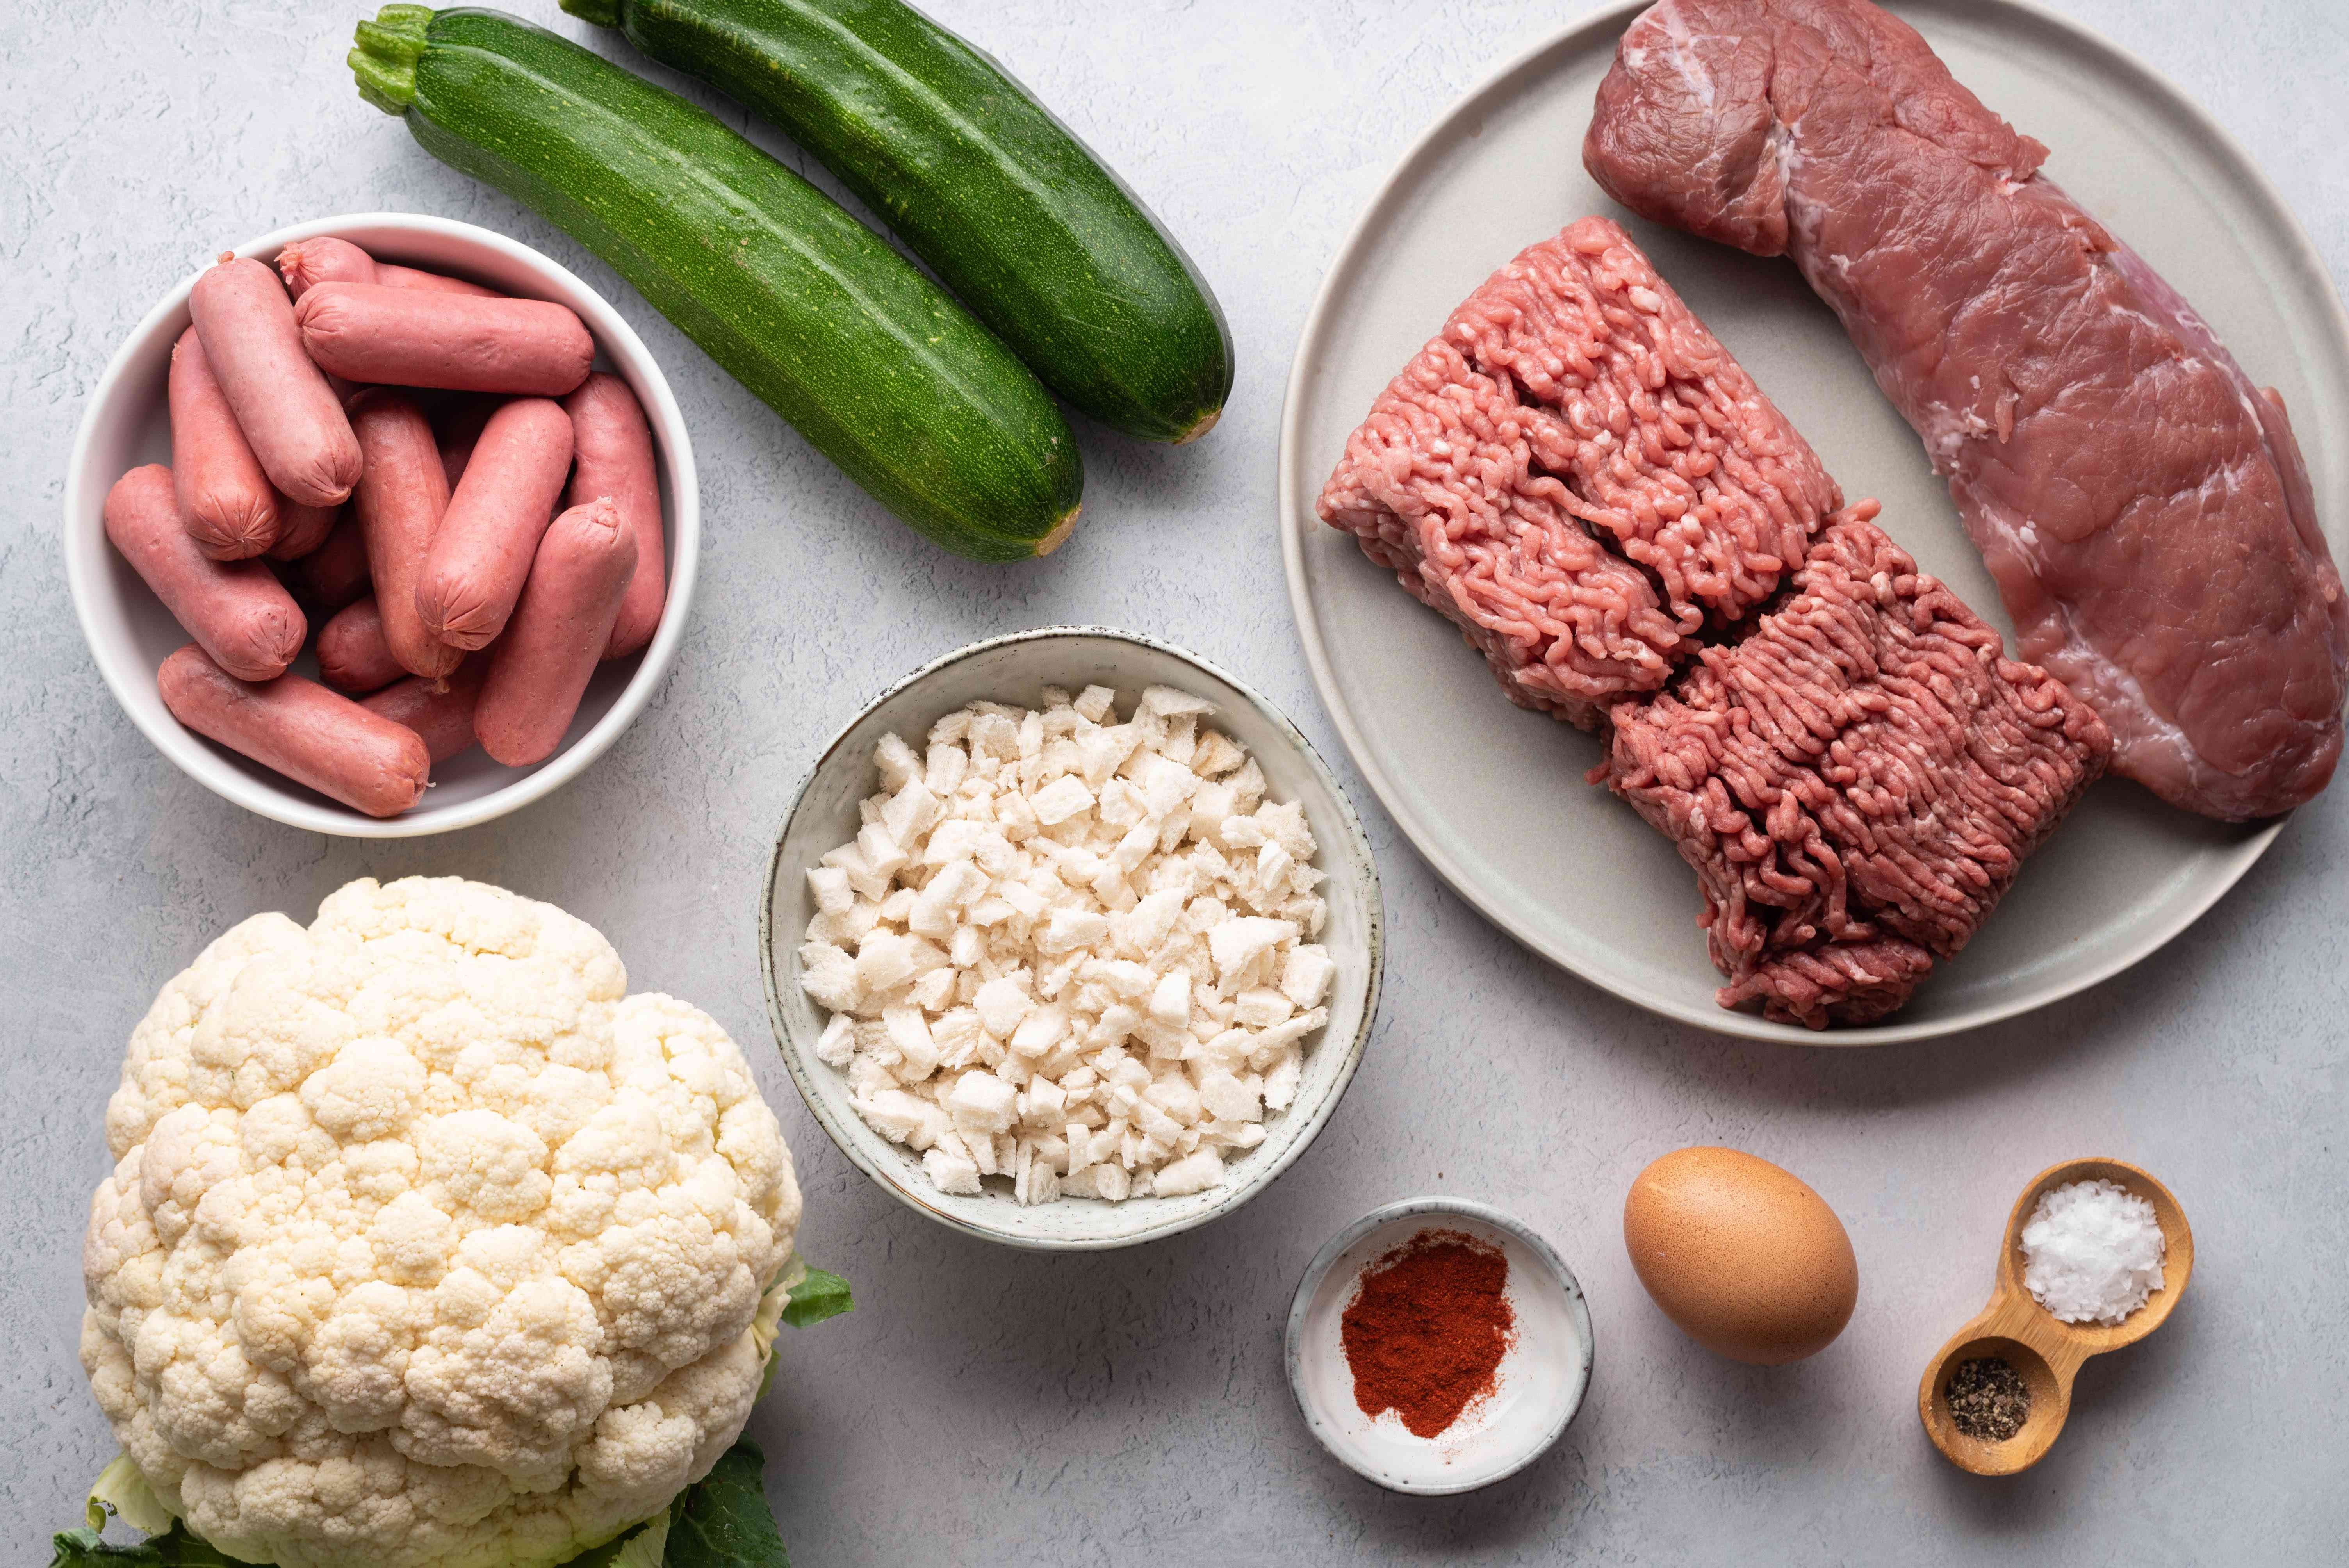 Meat and vegetable ingredients for German meat fondue